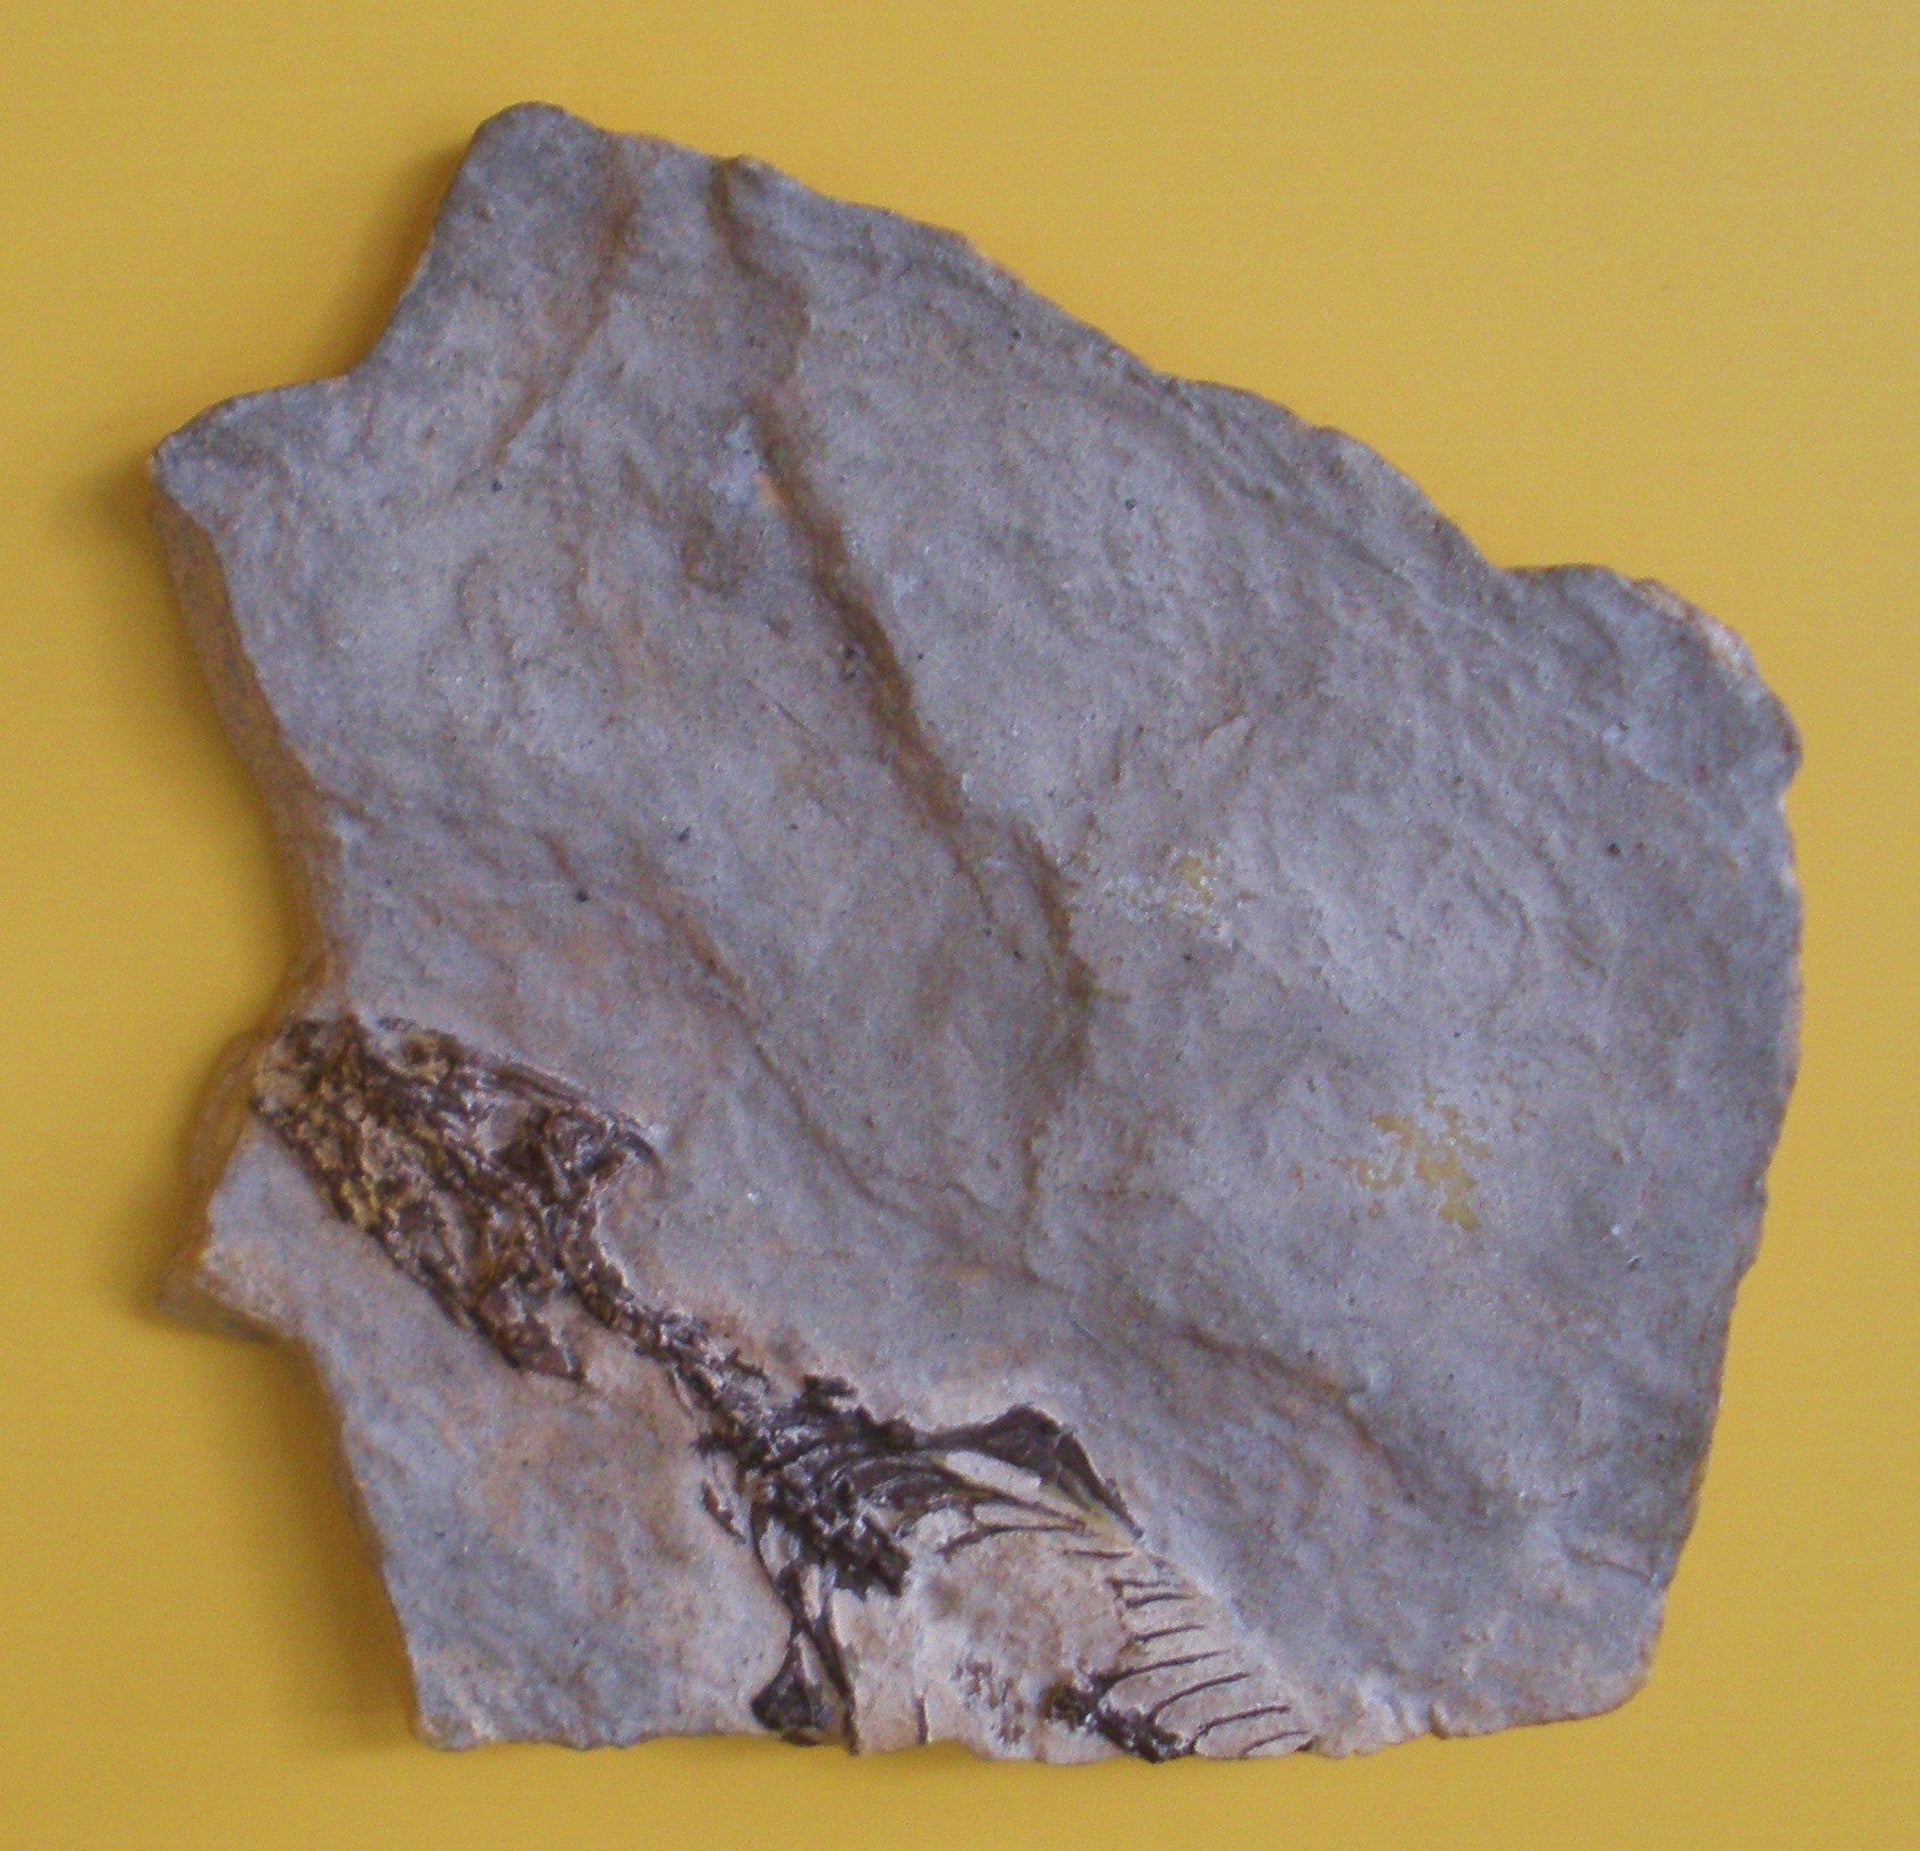 Megachirella is an extinct genus of lepidosauromorph reptile from the Middle Triassic and contains one species, Megachirella wachtleri, from the Dolomites of northern Italy.